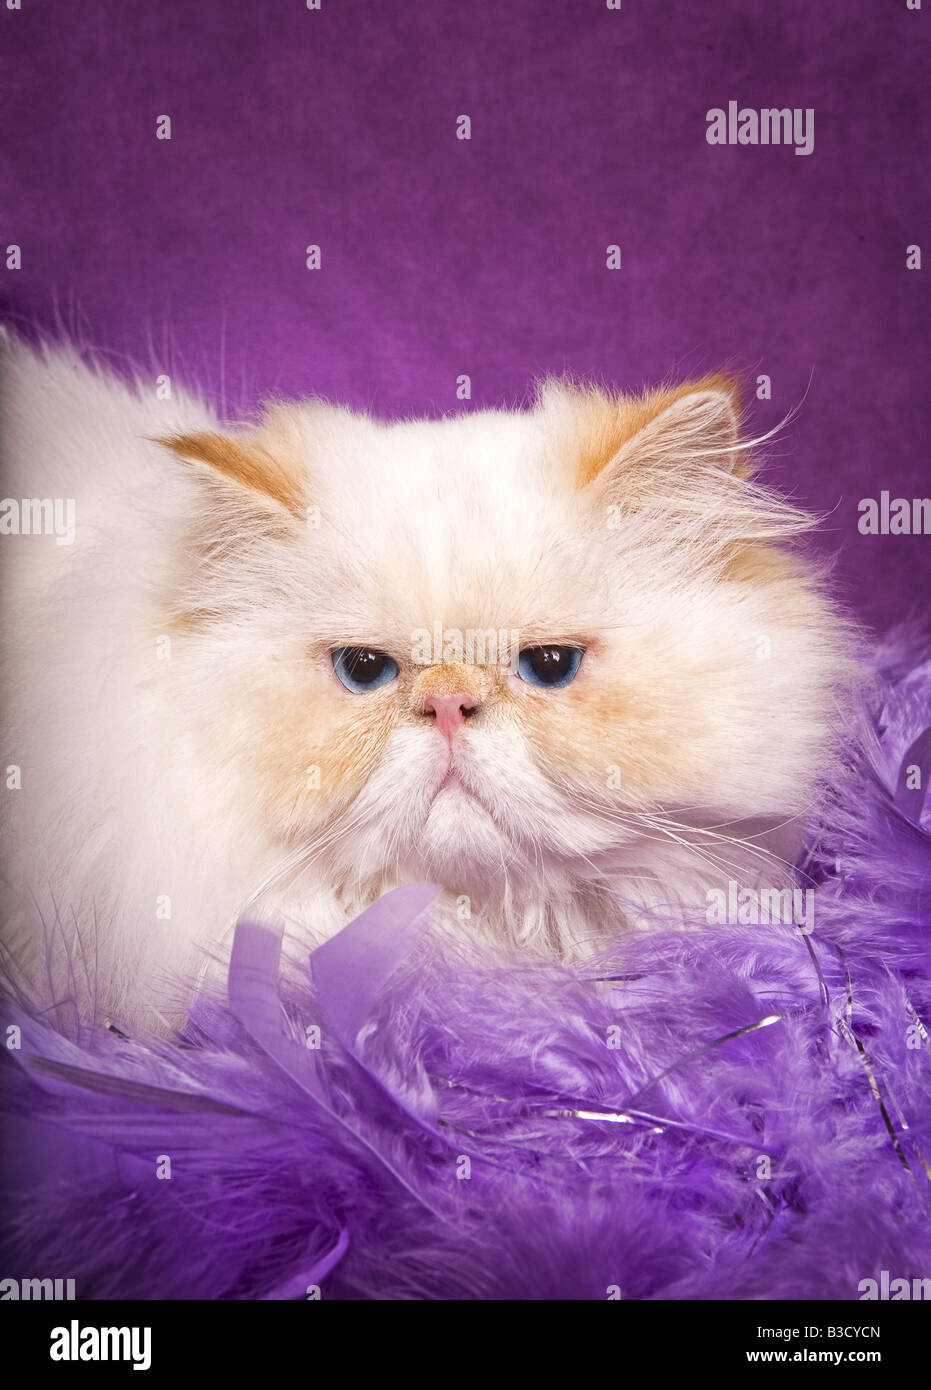 Flame Point Himalayan Cat lying on lavender boa on vibrant purple background - Stock Image